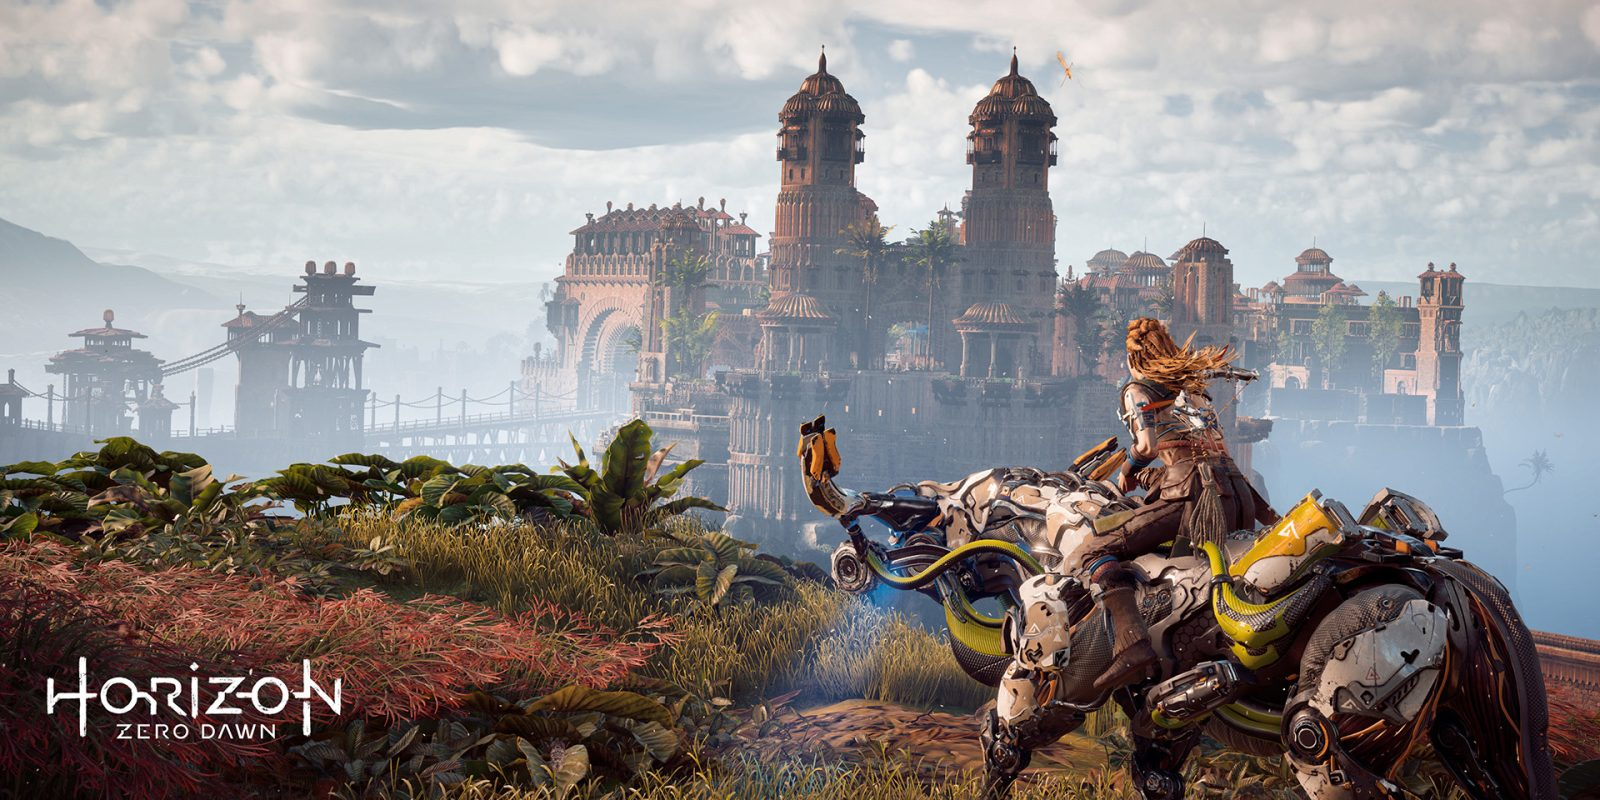 Today's Best Game Deals: Horizon Zero Dawn Complete $6, Gears 5 $16, more